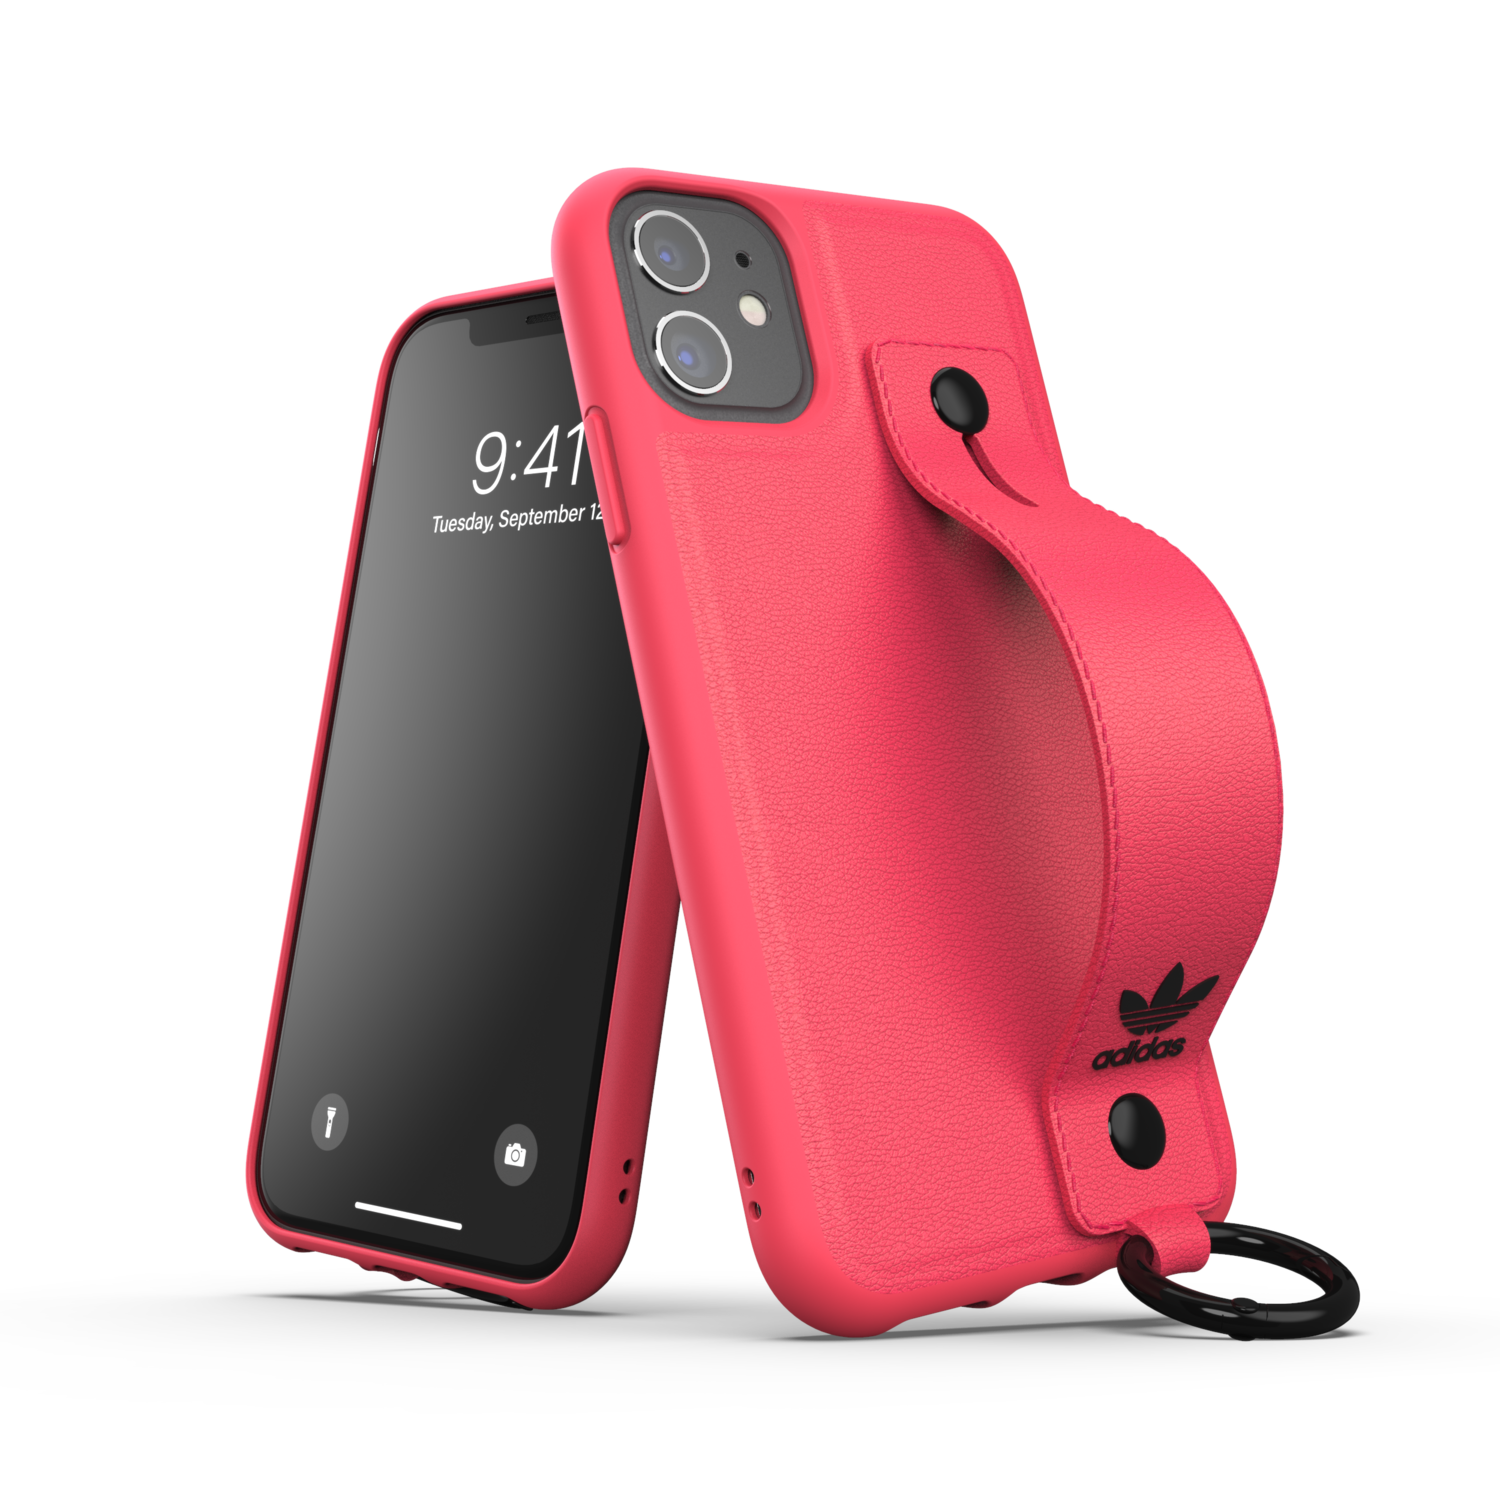 adidas OR Hand Strap Case FW20/SS21 for iPhone 11 signal pink